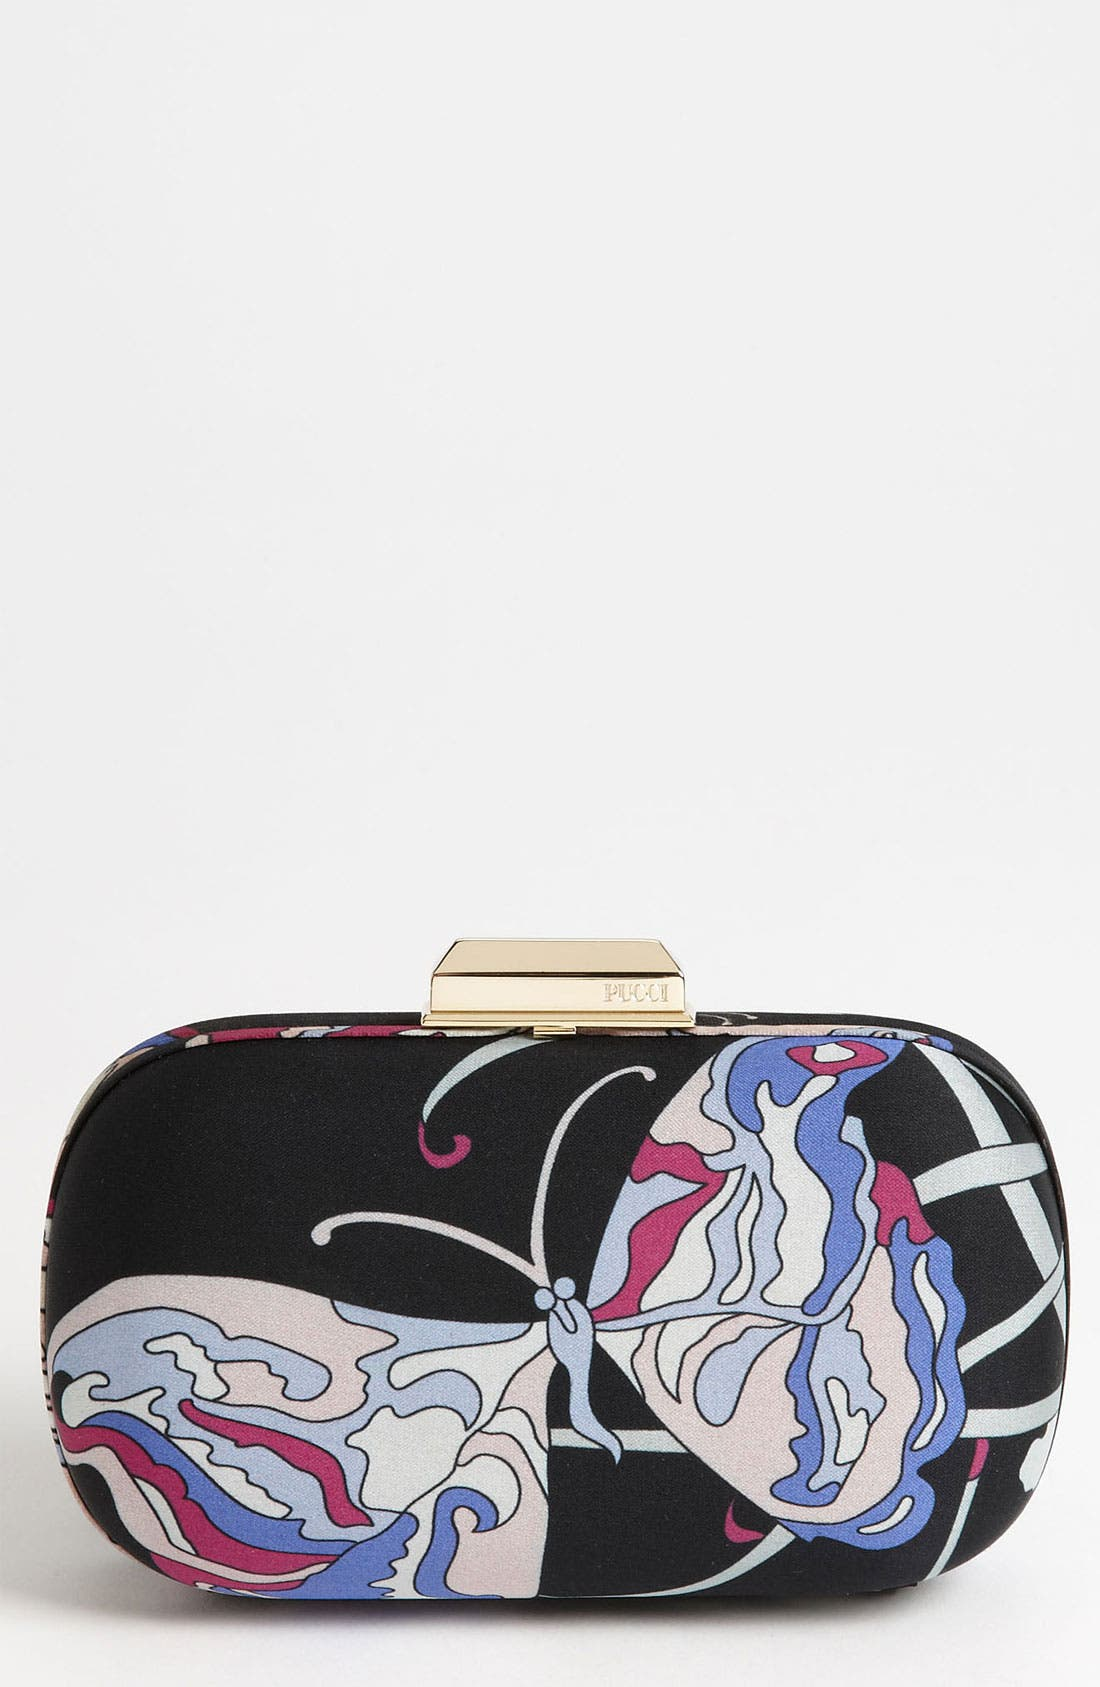 Main Image - Emilio Pucci 'Butterfly' Silk Minaudiere